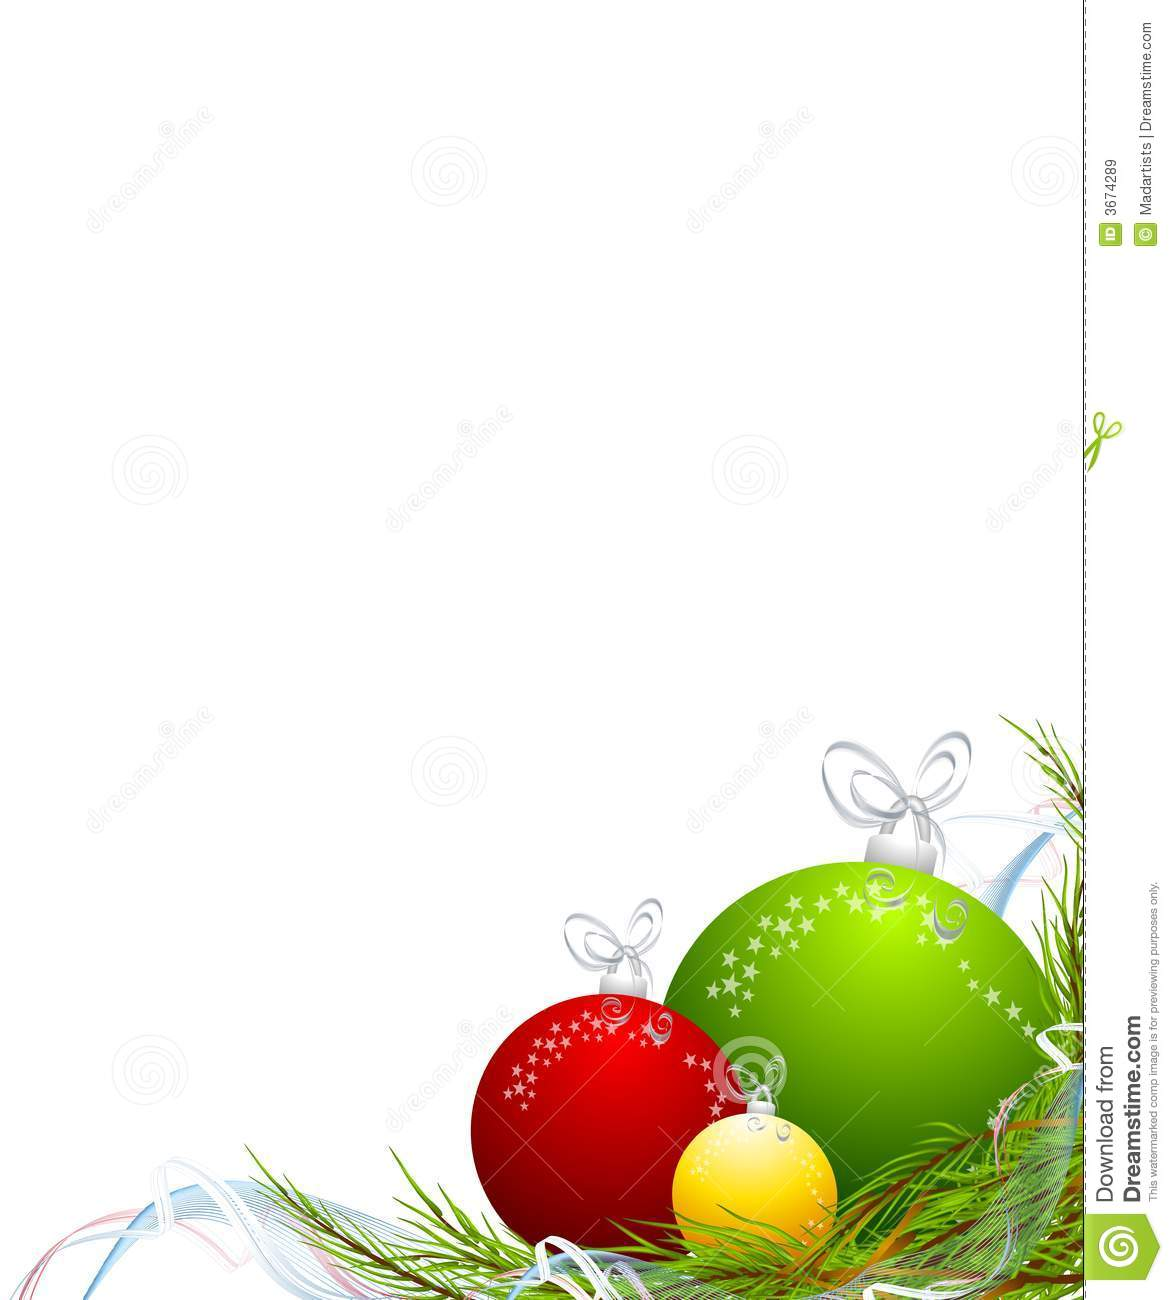 Christmas Ornaments Corner Border Stock Illustration.